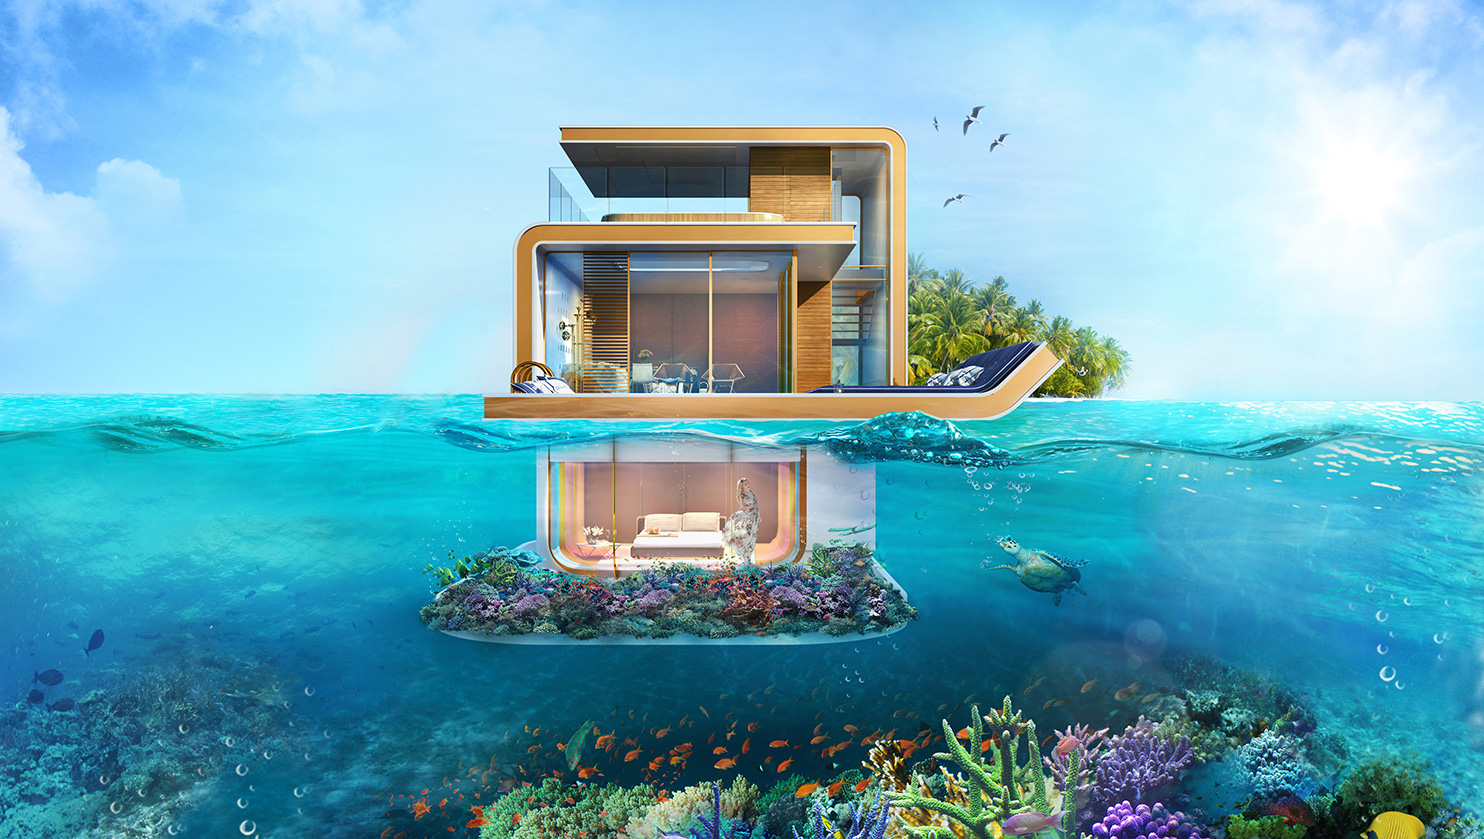 Living the Luxury Life in a Home That Floats